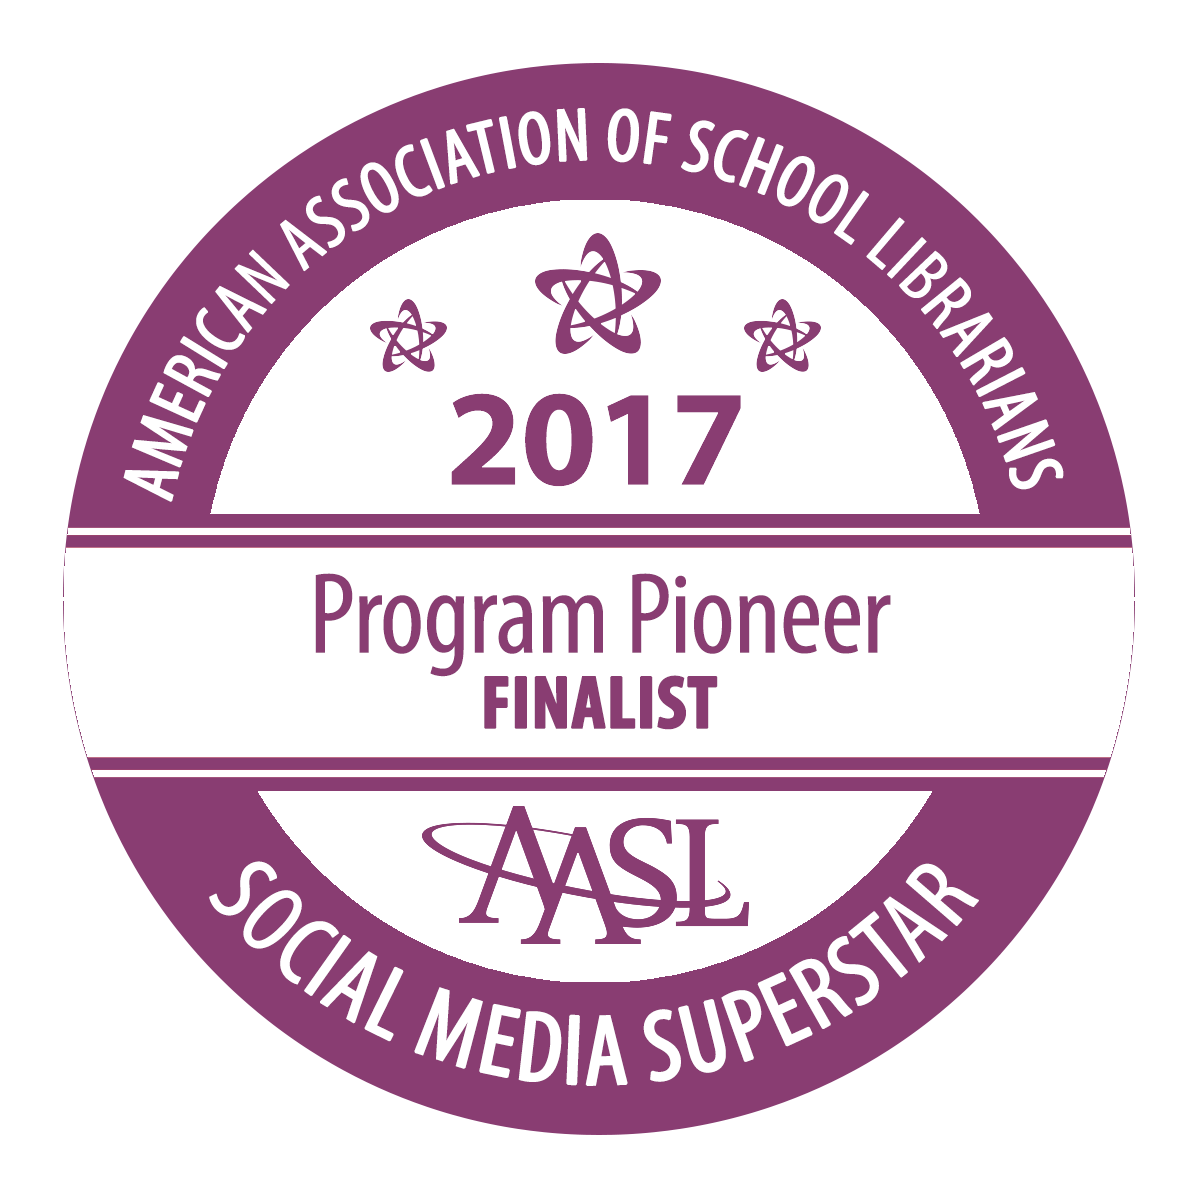 AASL Social Media Superstar Finalist